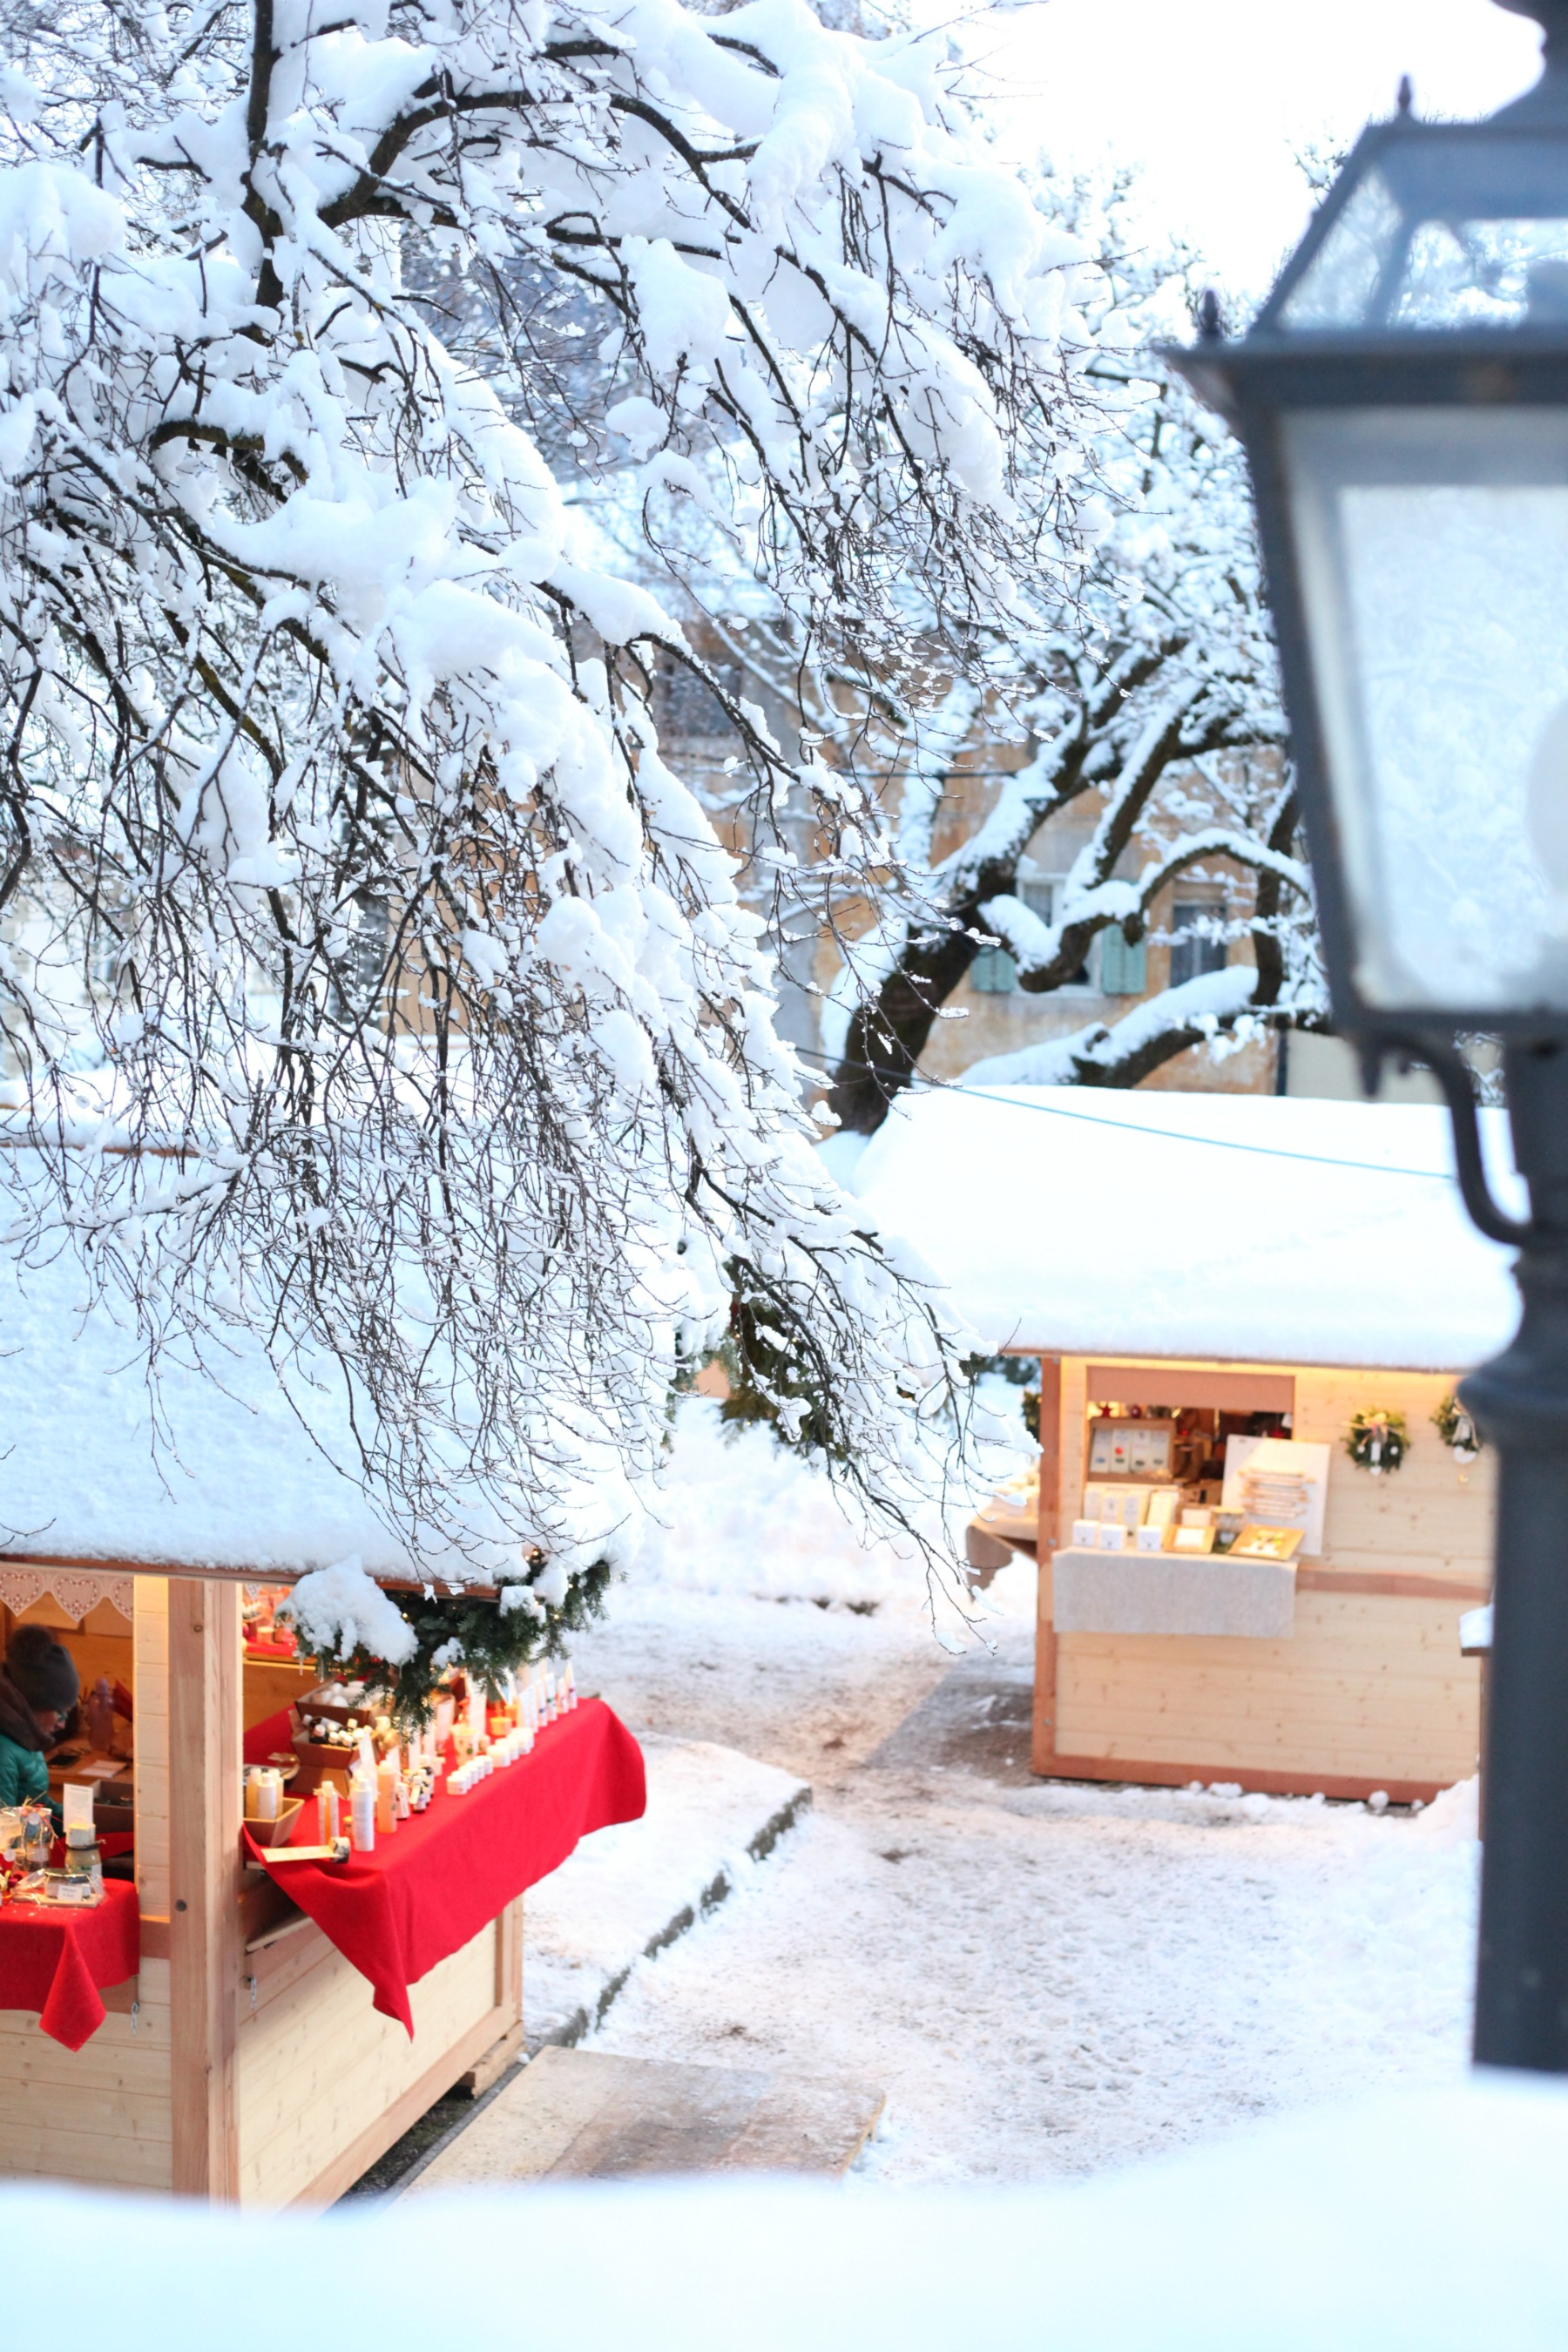 Christmas market in Cavalese, Val di Fiemme, Italy